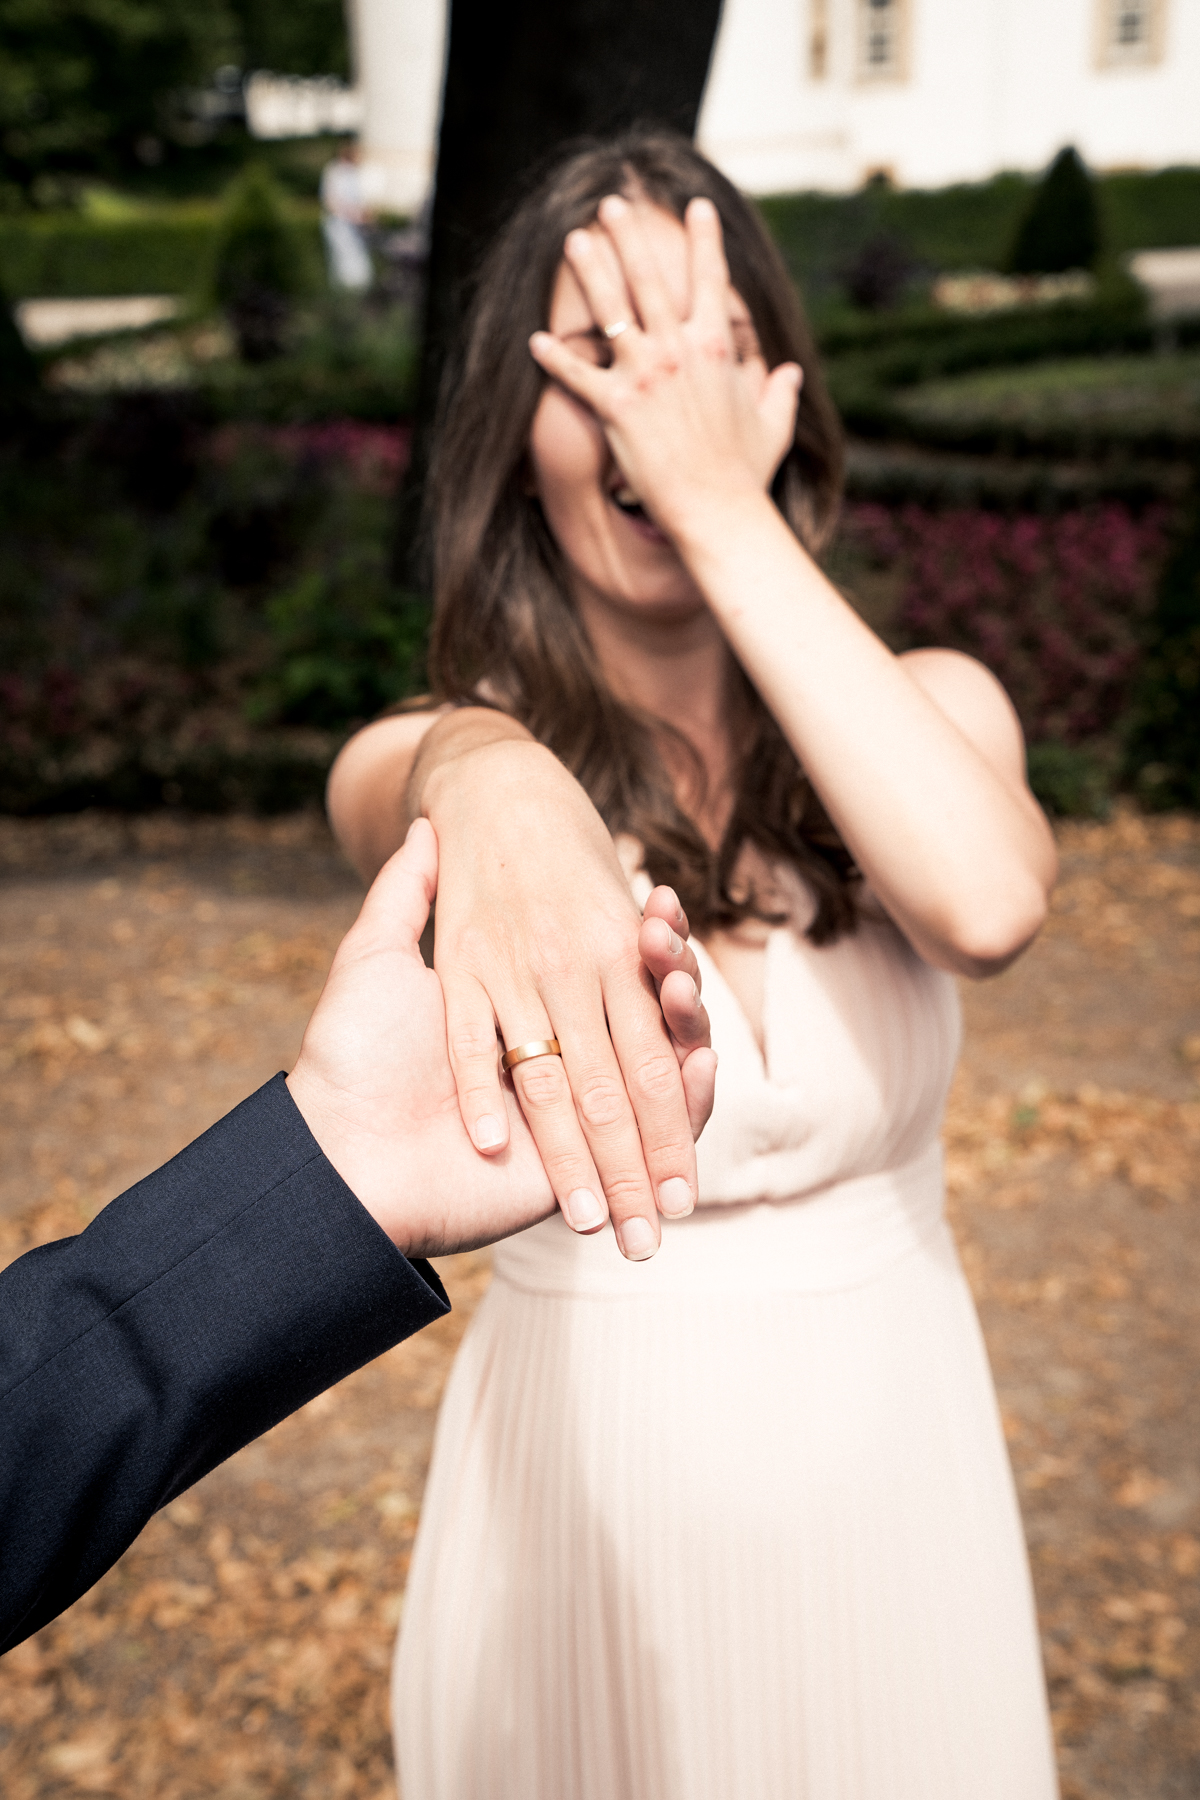 Wedding awesome by christiane griese